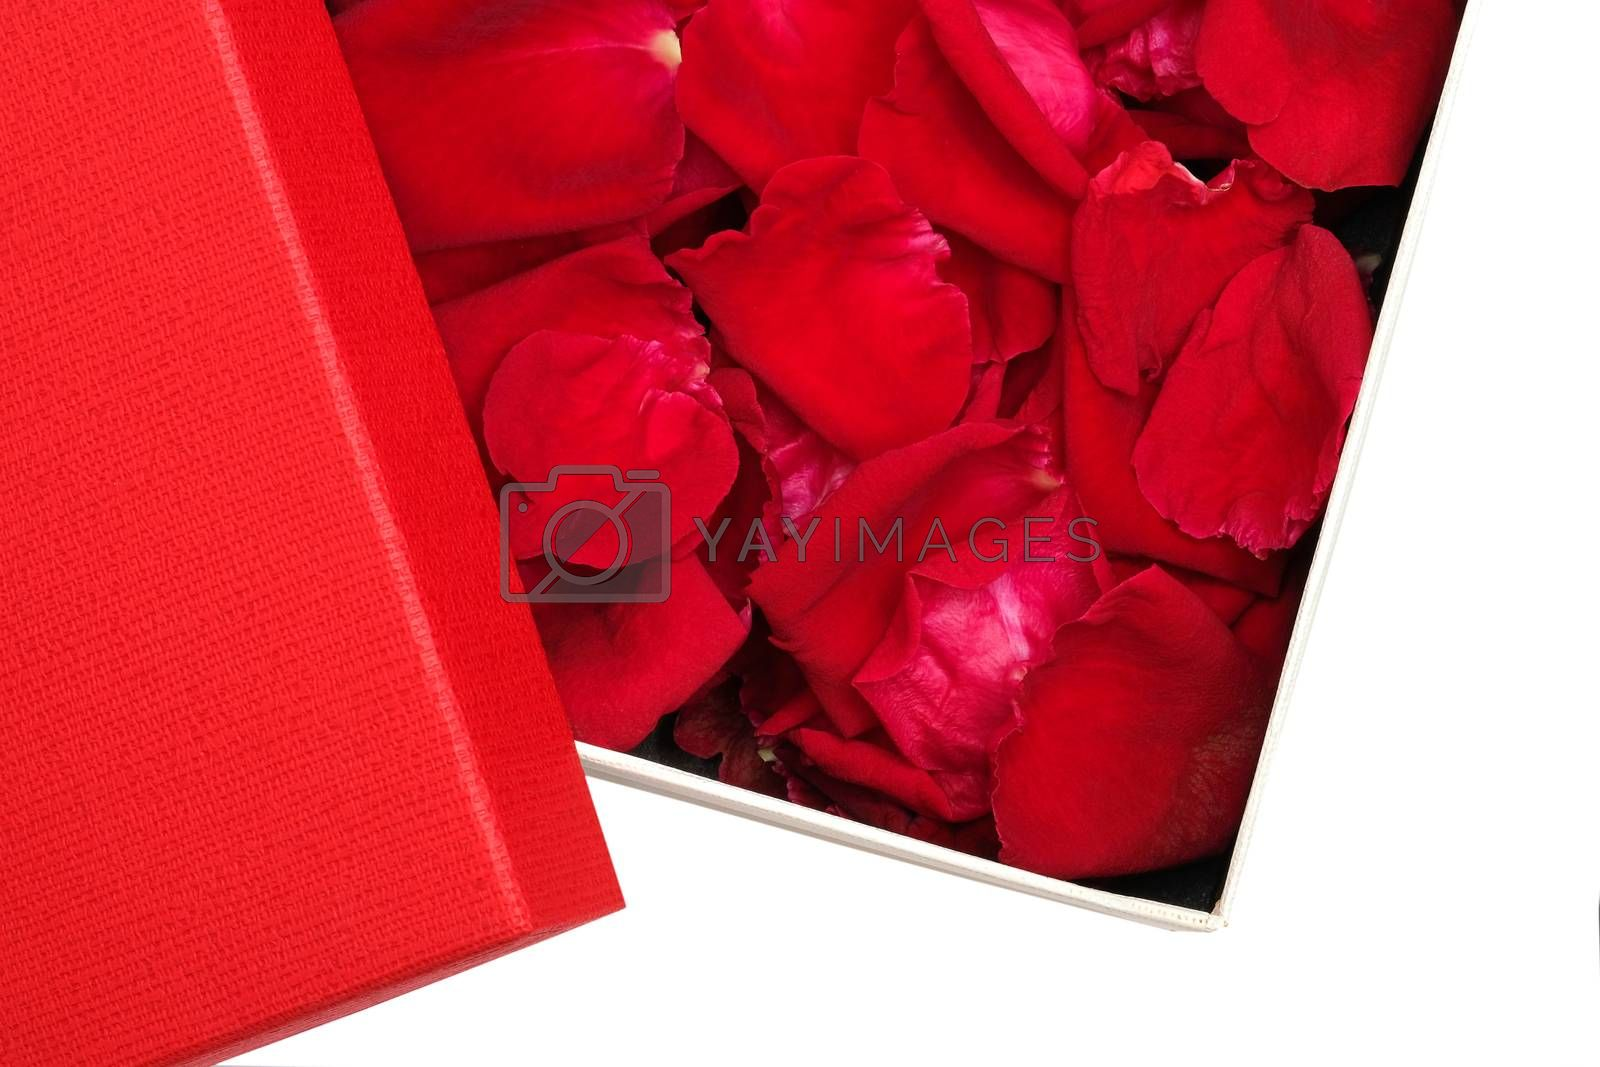 box of red rose petals  by Nawoot